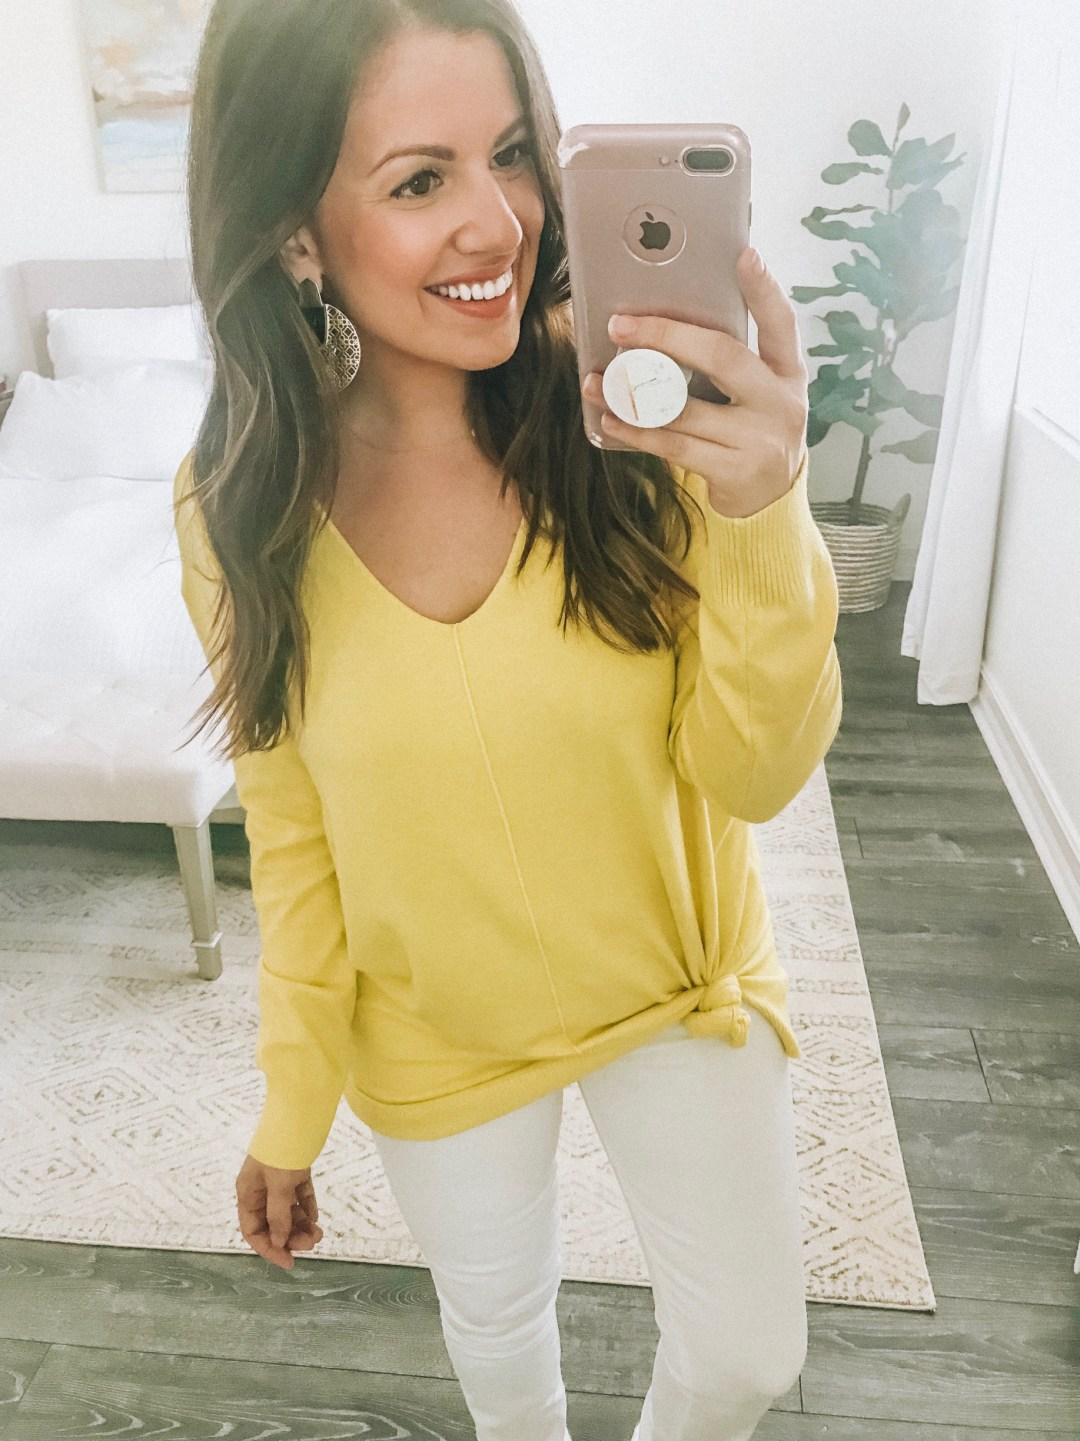 So Soft Cashmere Like Sweater, Neon Yellow Spring Sweater, Spring Sweater, Sunflowers and Stilettos fashion blog, Florida Fashion Blogger Jaime Cittadino